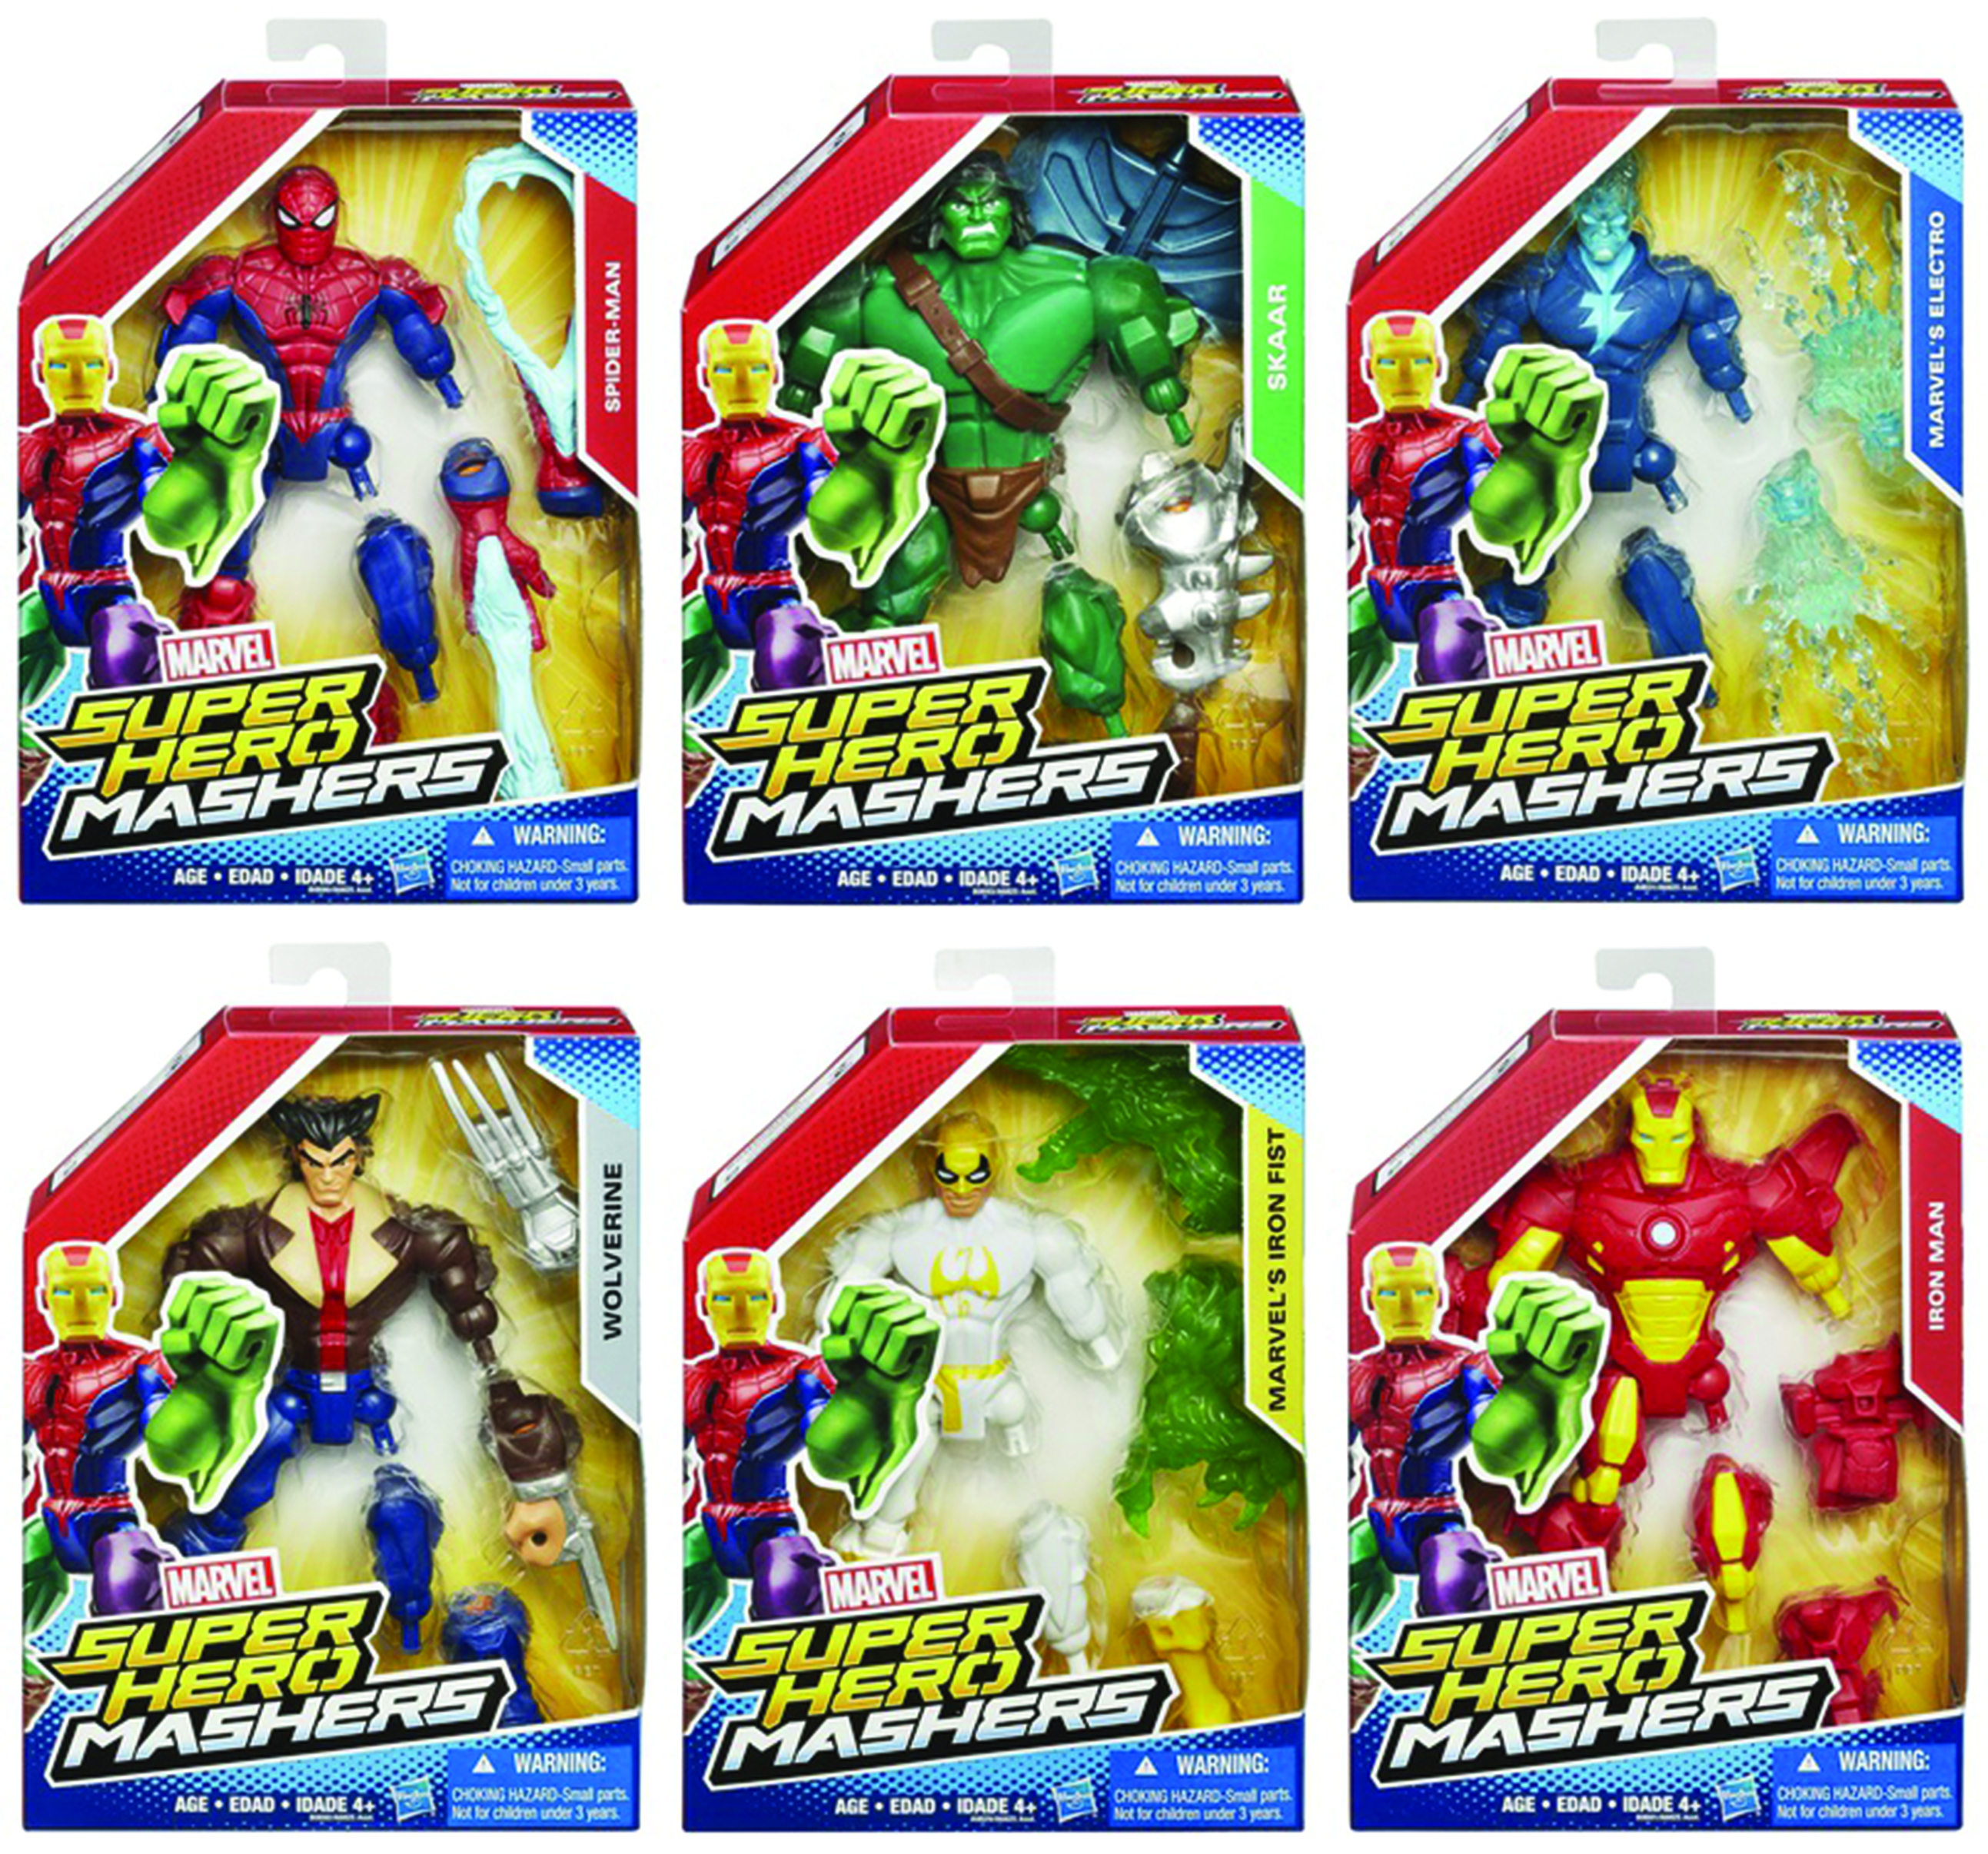 AVENGERS SUPER HERO MASHERS 6IN AF ASST 201502